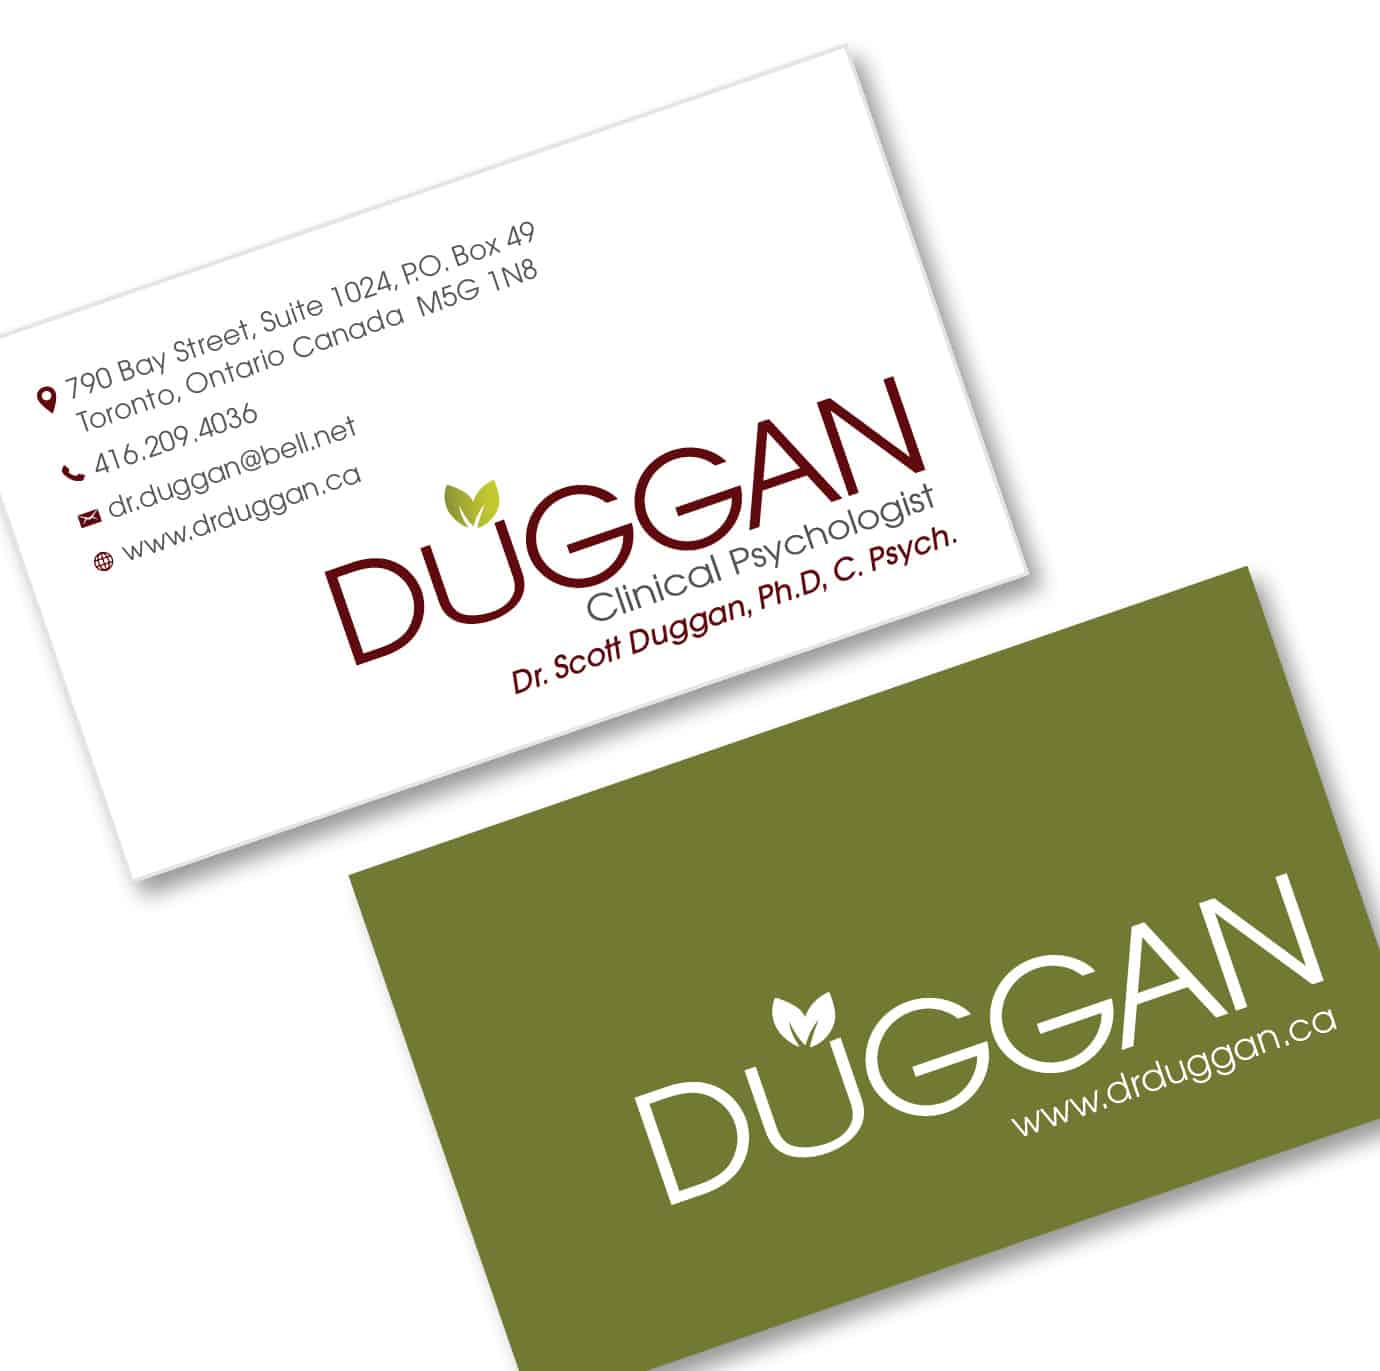 Dr. Duggan, Clinical Psychologist